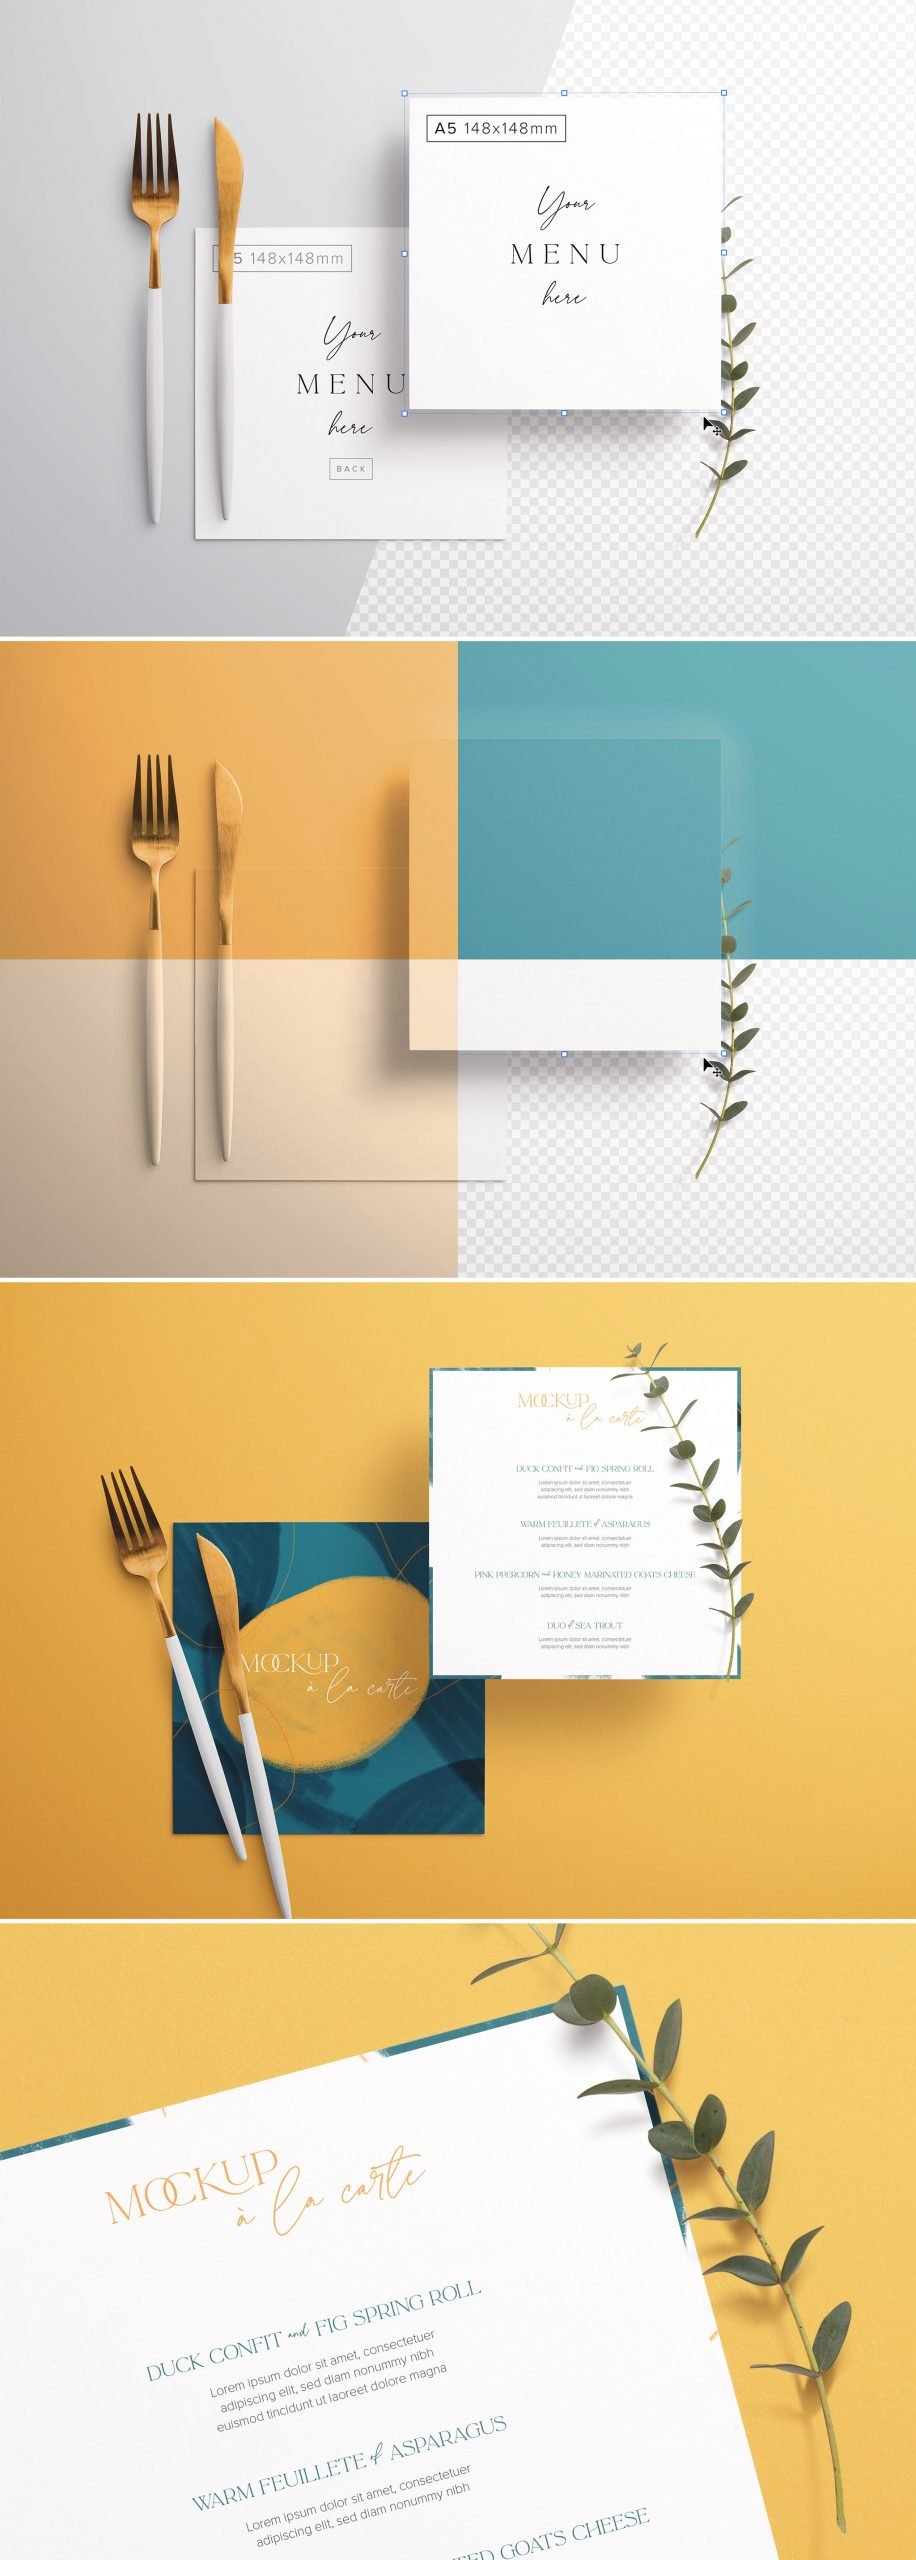 Table A5 Square Menu with Cutleries And Eucalyptus Preview scaled